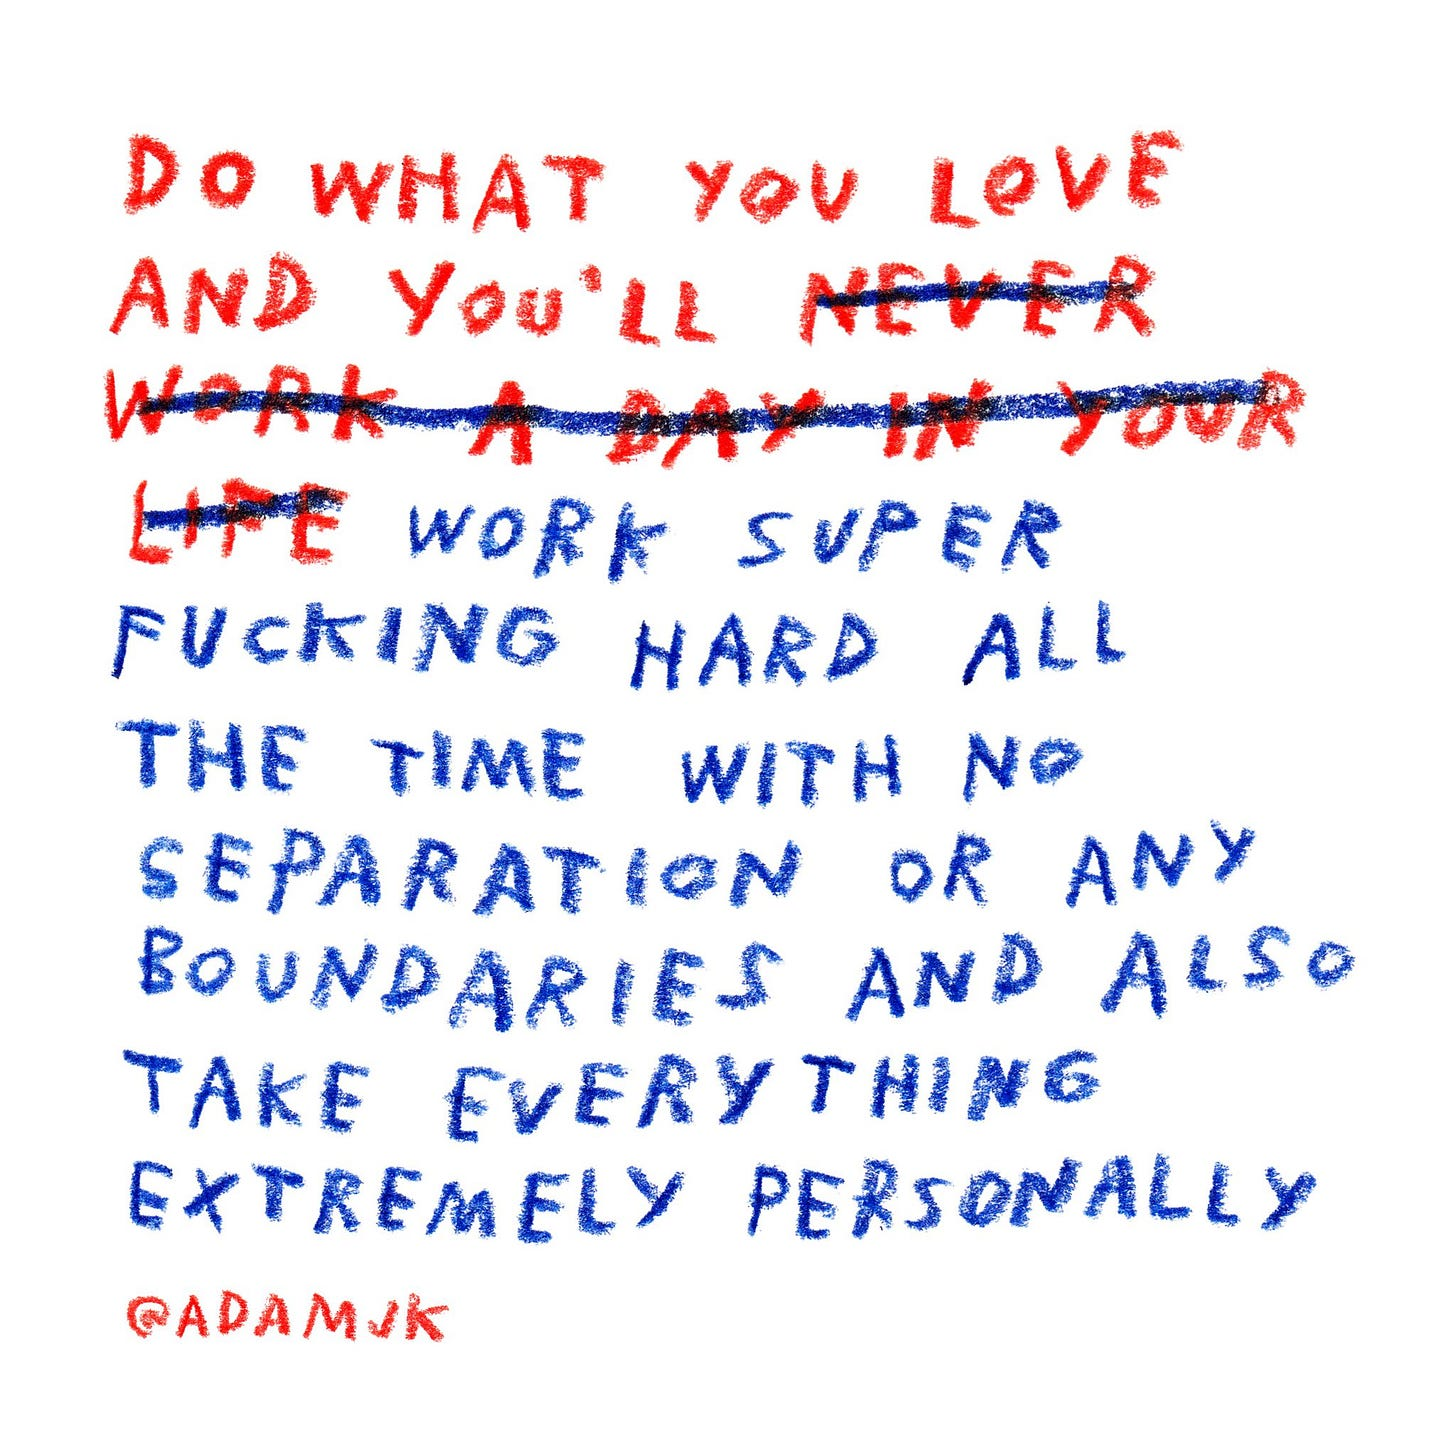 """Adam JK on Twitter: """"Do what you love and you'll work super fucking hard  all the time with no separation or any boundaries and also take everything  extremely personally https://t.co/Al4tP7UJS0… https://t.co/kmuGv4Vmw7"""""""